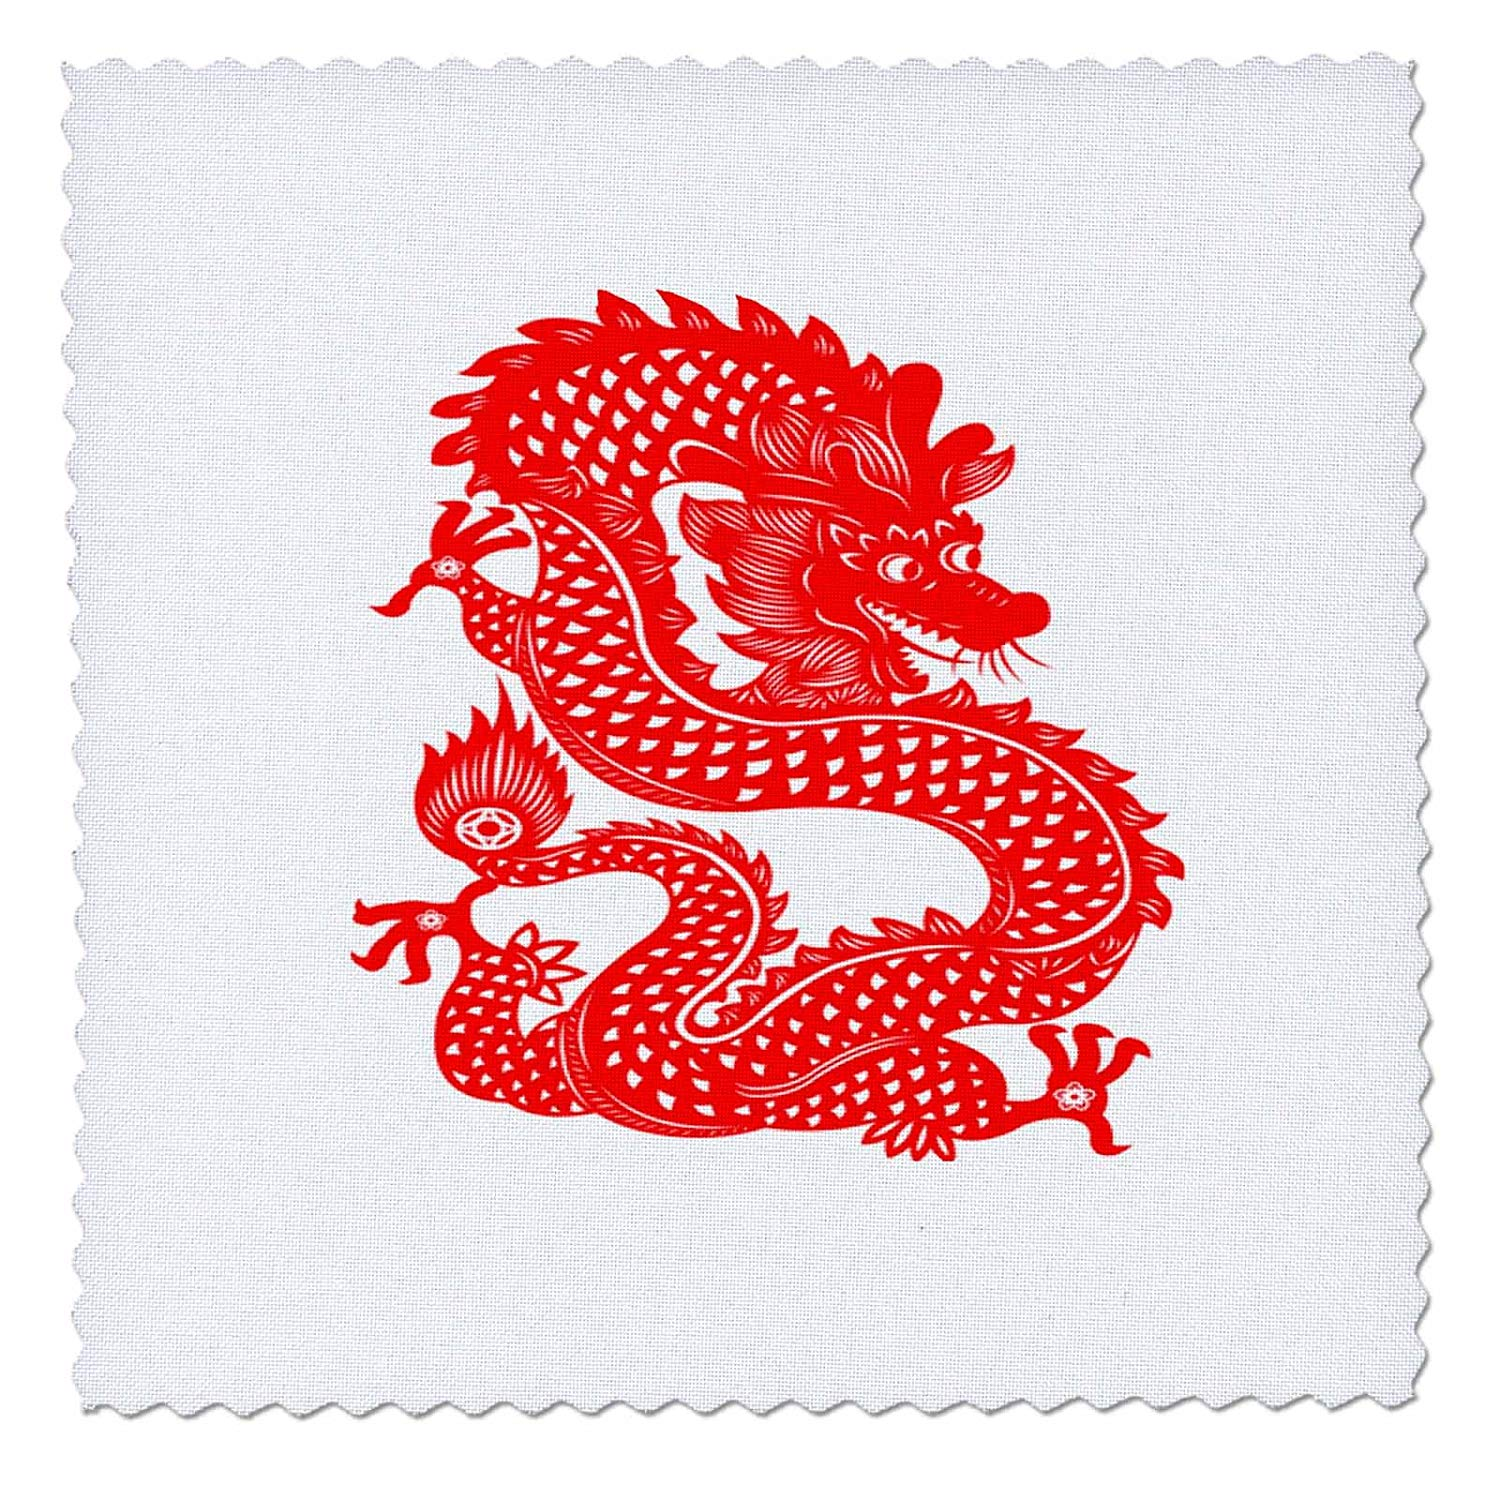 af5e4760970f Cheap 9 Square Quilt, find 9 Square Quilt deals on line at Alibaba.com